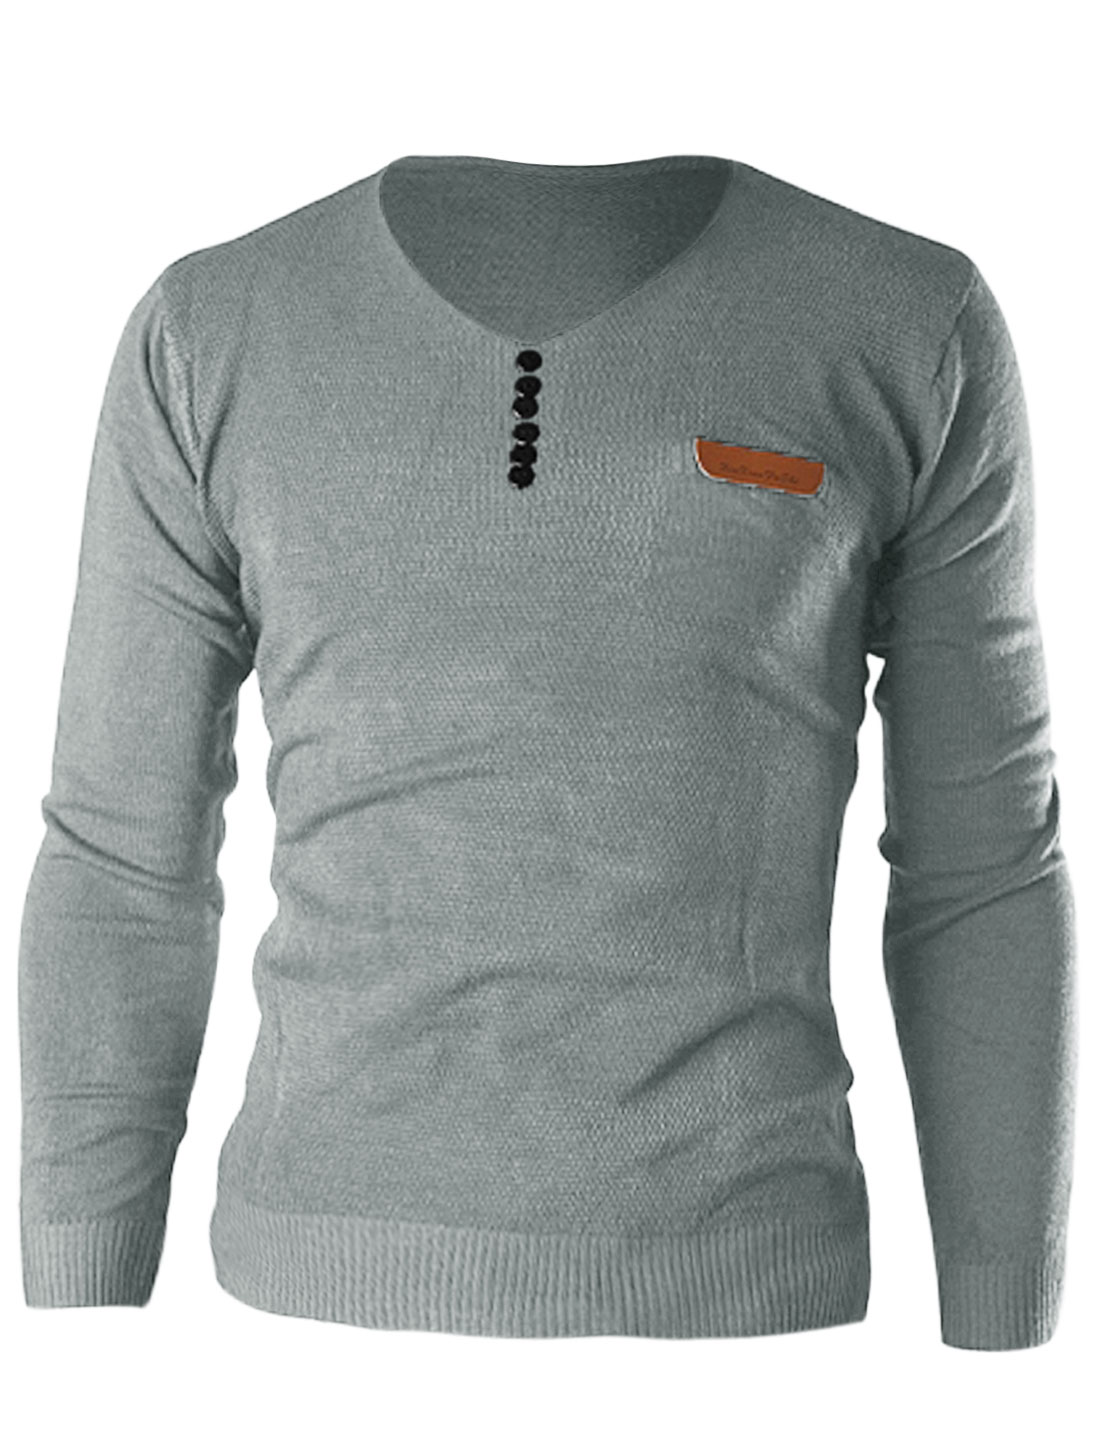 New Style Pullover V Neck Button Decor Front Shirt for Men Light Gray M